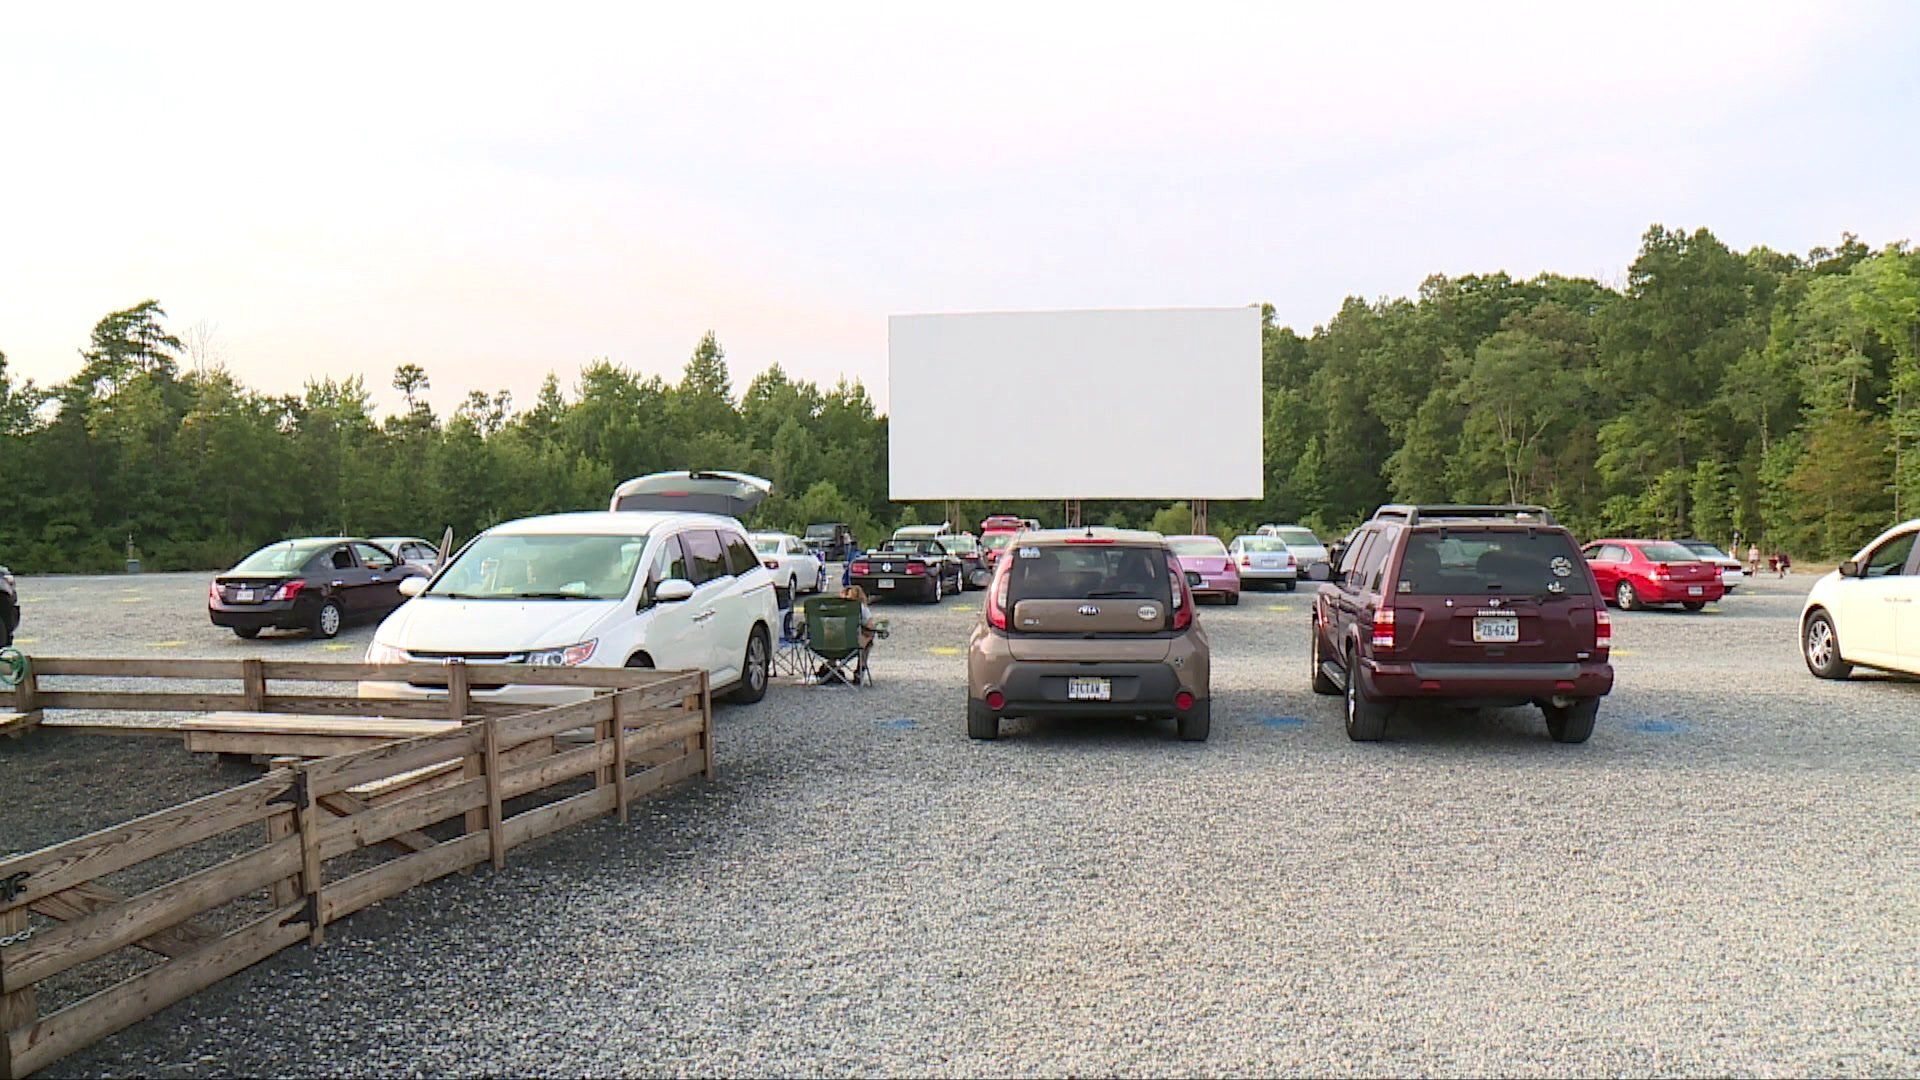 Photos Goochland Drive In Voted One Of The Must Visit Drive Ins In America On the street of old fredericksburg road and street number is 4344. photos goochland drive in voted one of